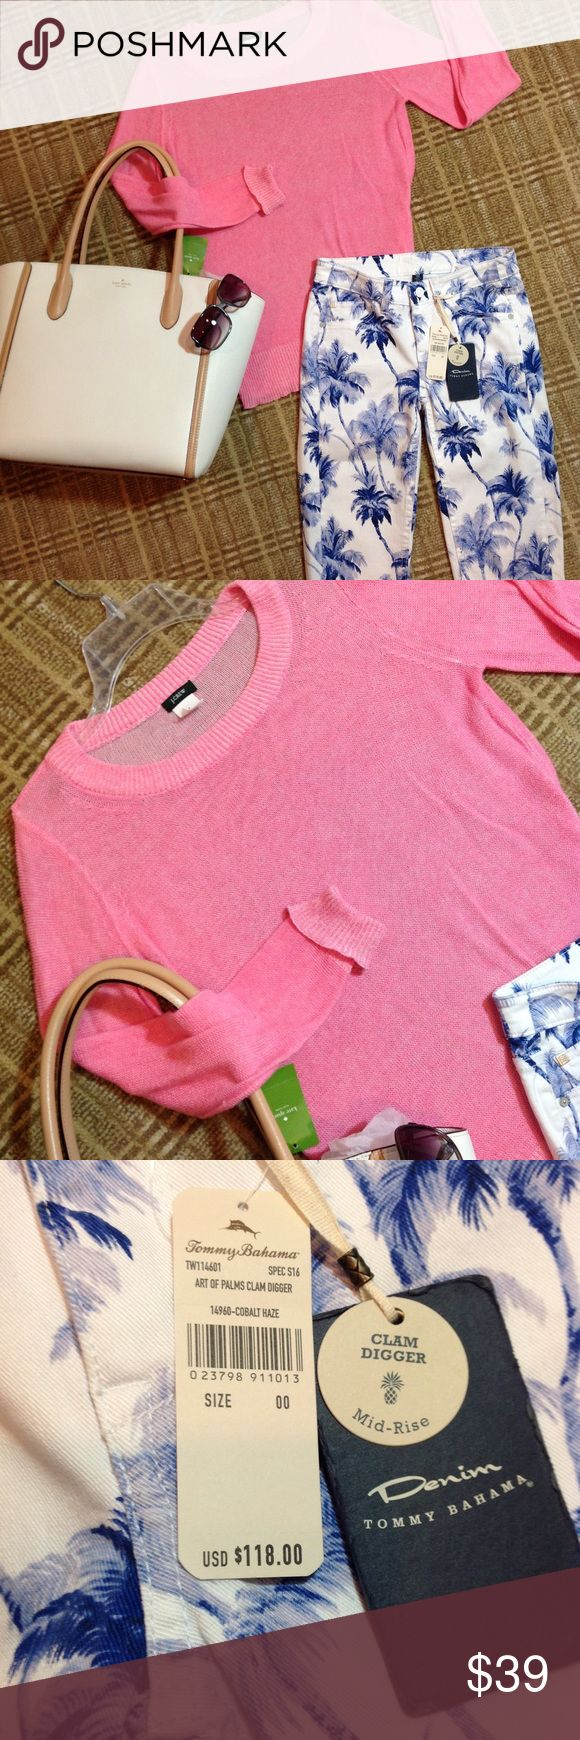 """J Crew Sheer Pink Crew Neck Sweater S Perfect for spring/summer!!! 69% linen. 31% cotton. Easy to wear...just enough structure. Approx 18"""" armpit to armpit. 25.5"""" top of shoulder to hem. Shown with New Tommy Bahama """"Palm"""" clam diggers (00). New Kate Spade white leather tote. Oliver People's """"Anisette"""" Shades!   All also for sale!! J. Crew Sweaters Crew & Scoop Necks"""